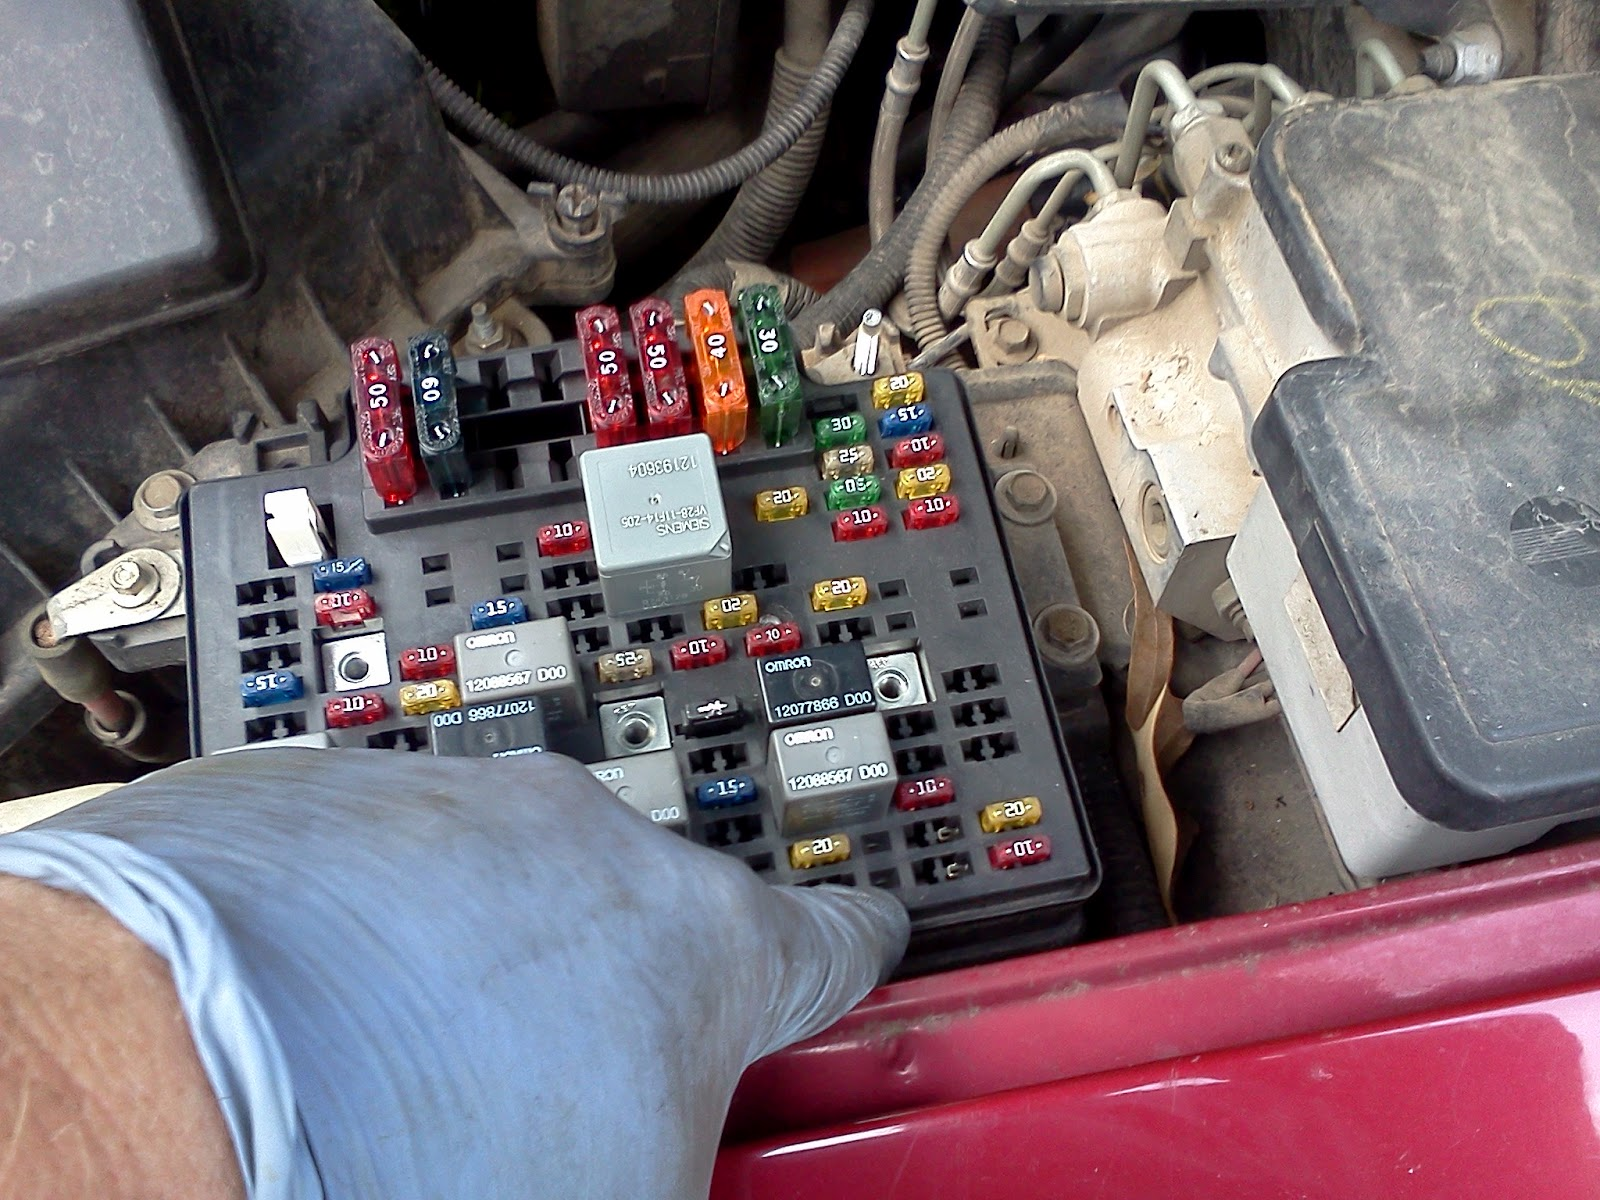 2001 Chevy S10 Brake Wiring Diagram Libraries Ford F 150 4wd Timthetech 1998 Chevrolet 2 Lights Not Working2001